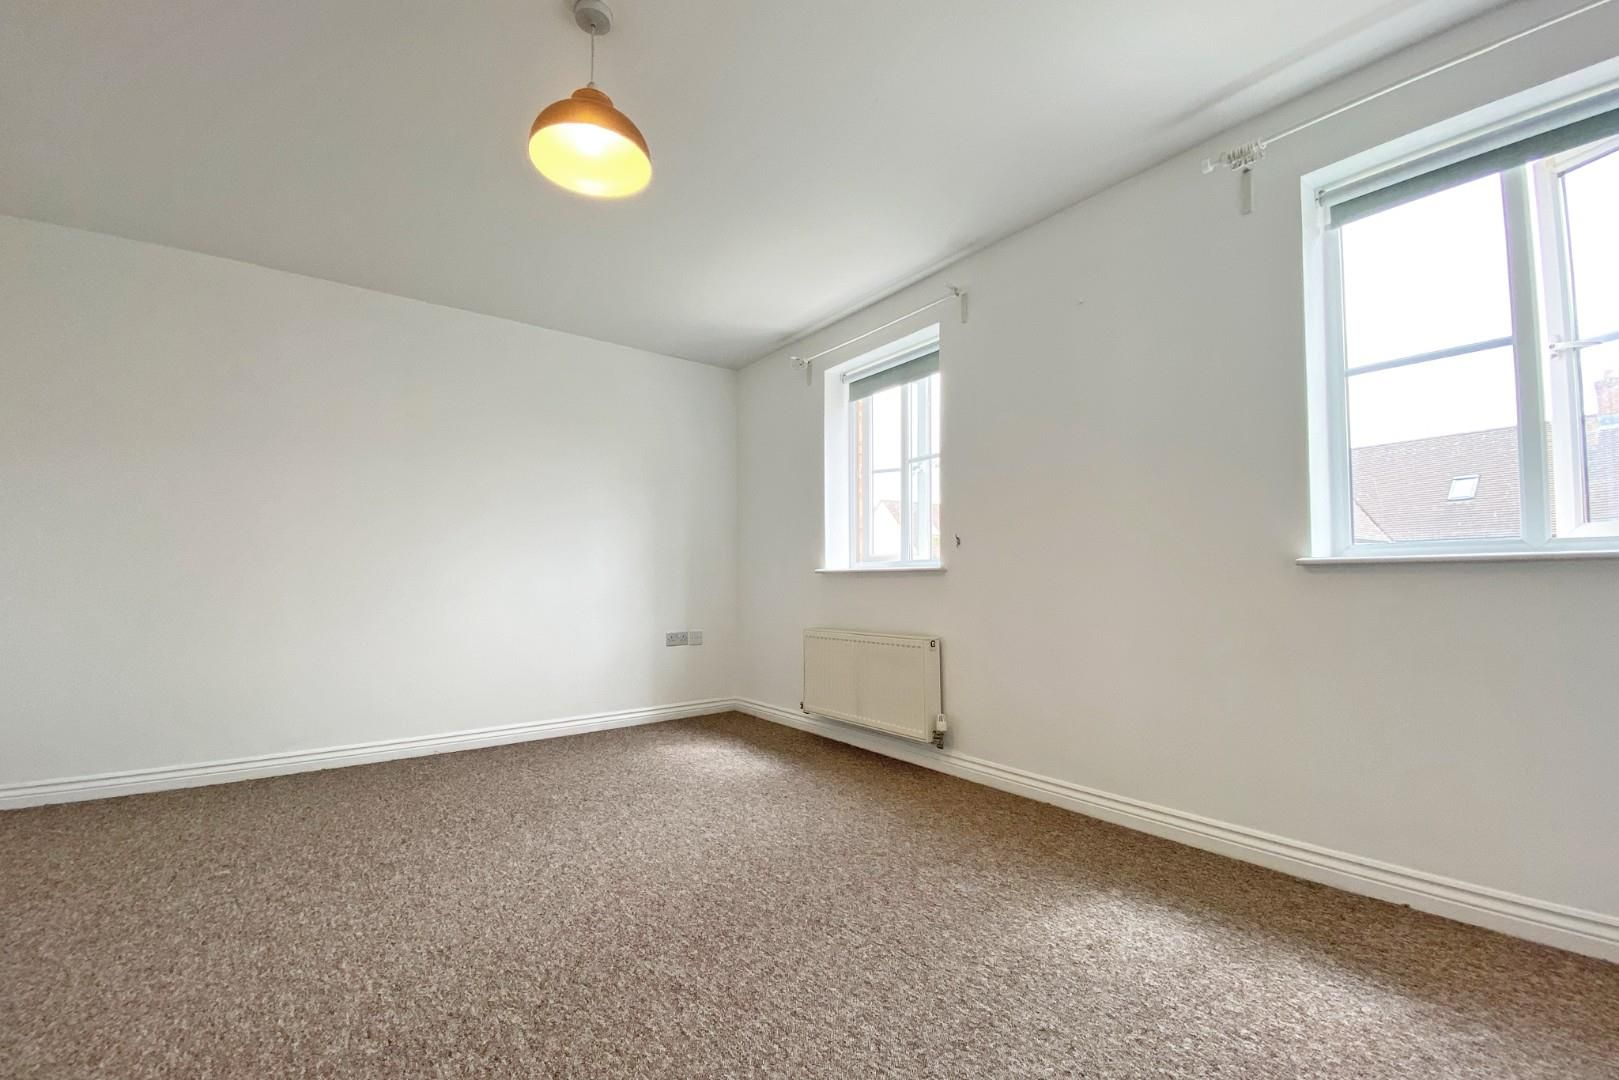 3 bed end of terrace to rent in Shinfield  - Property Image 6